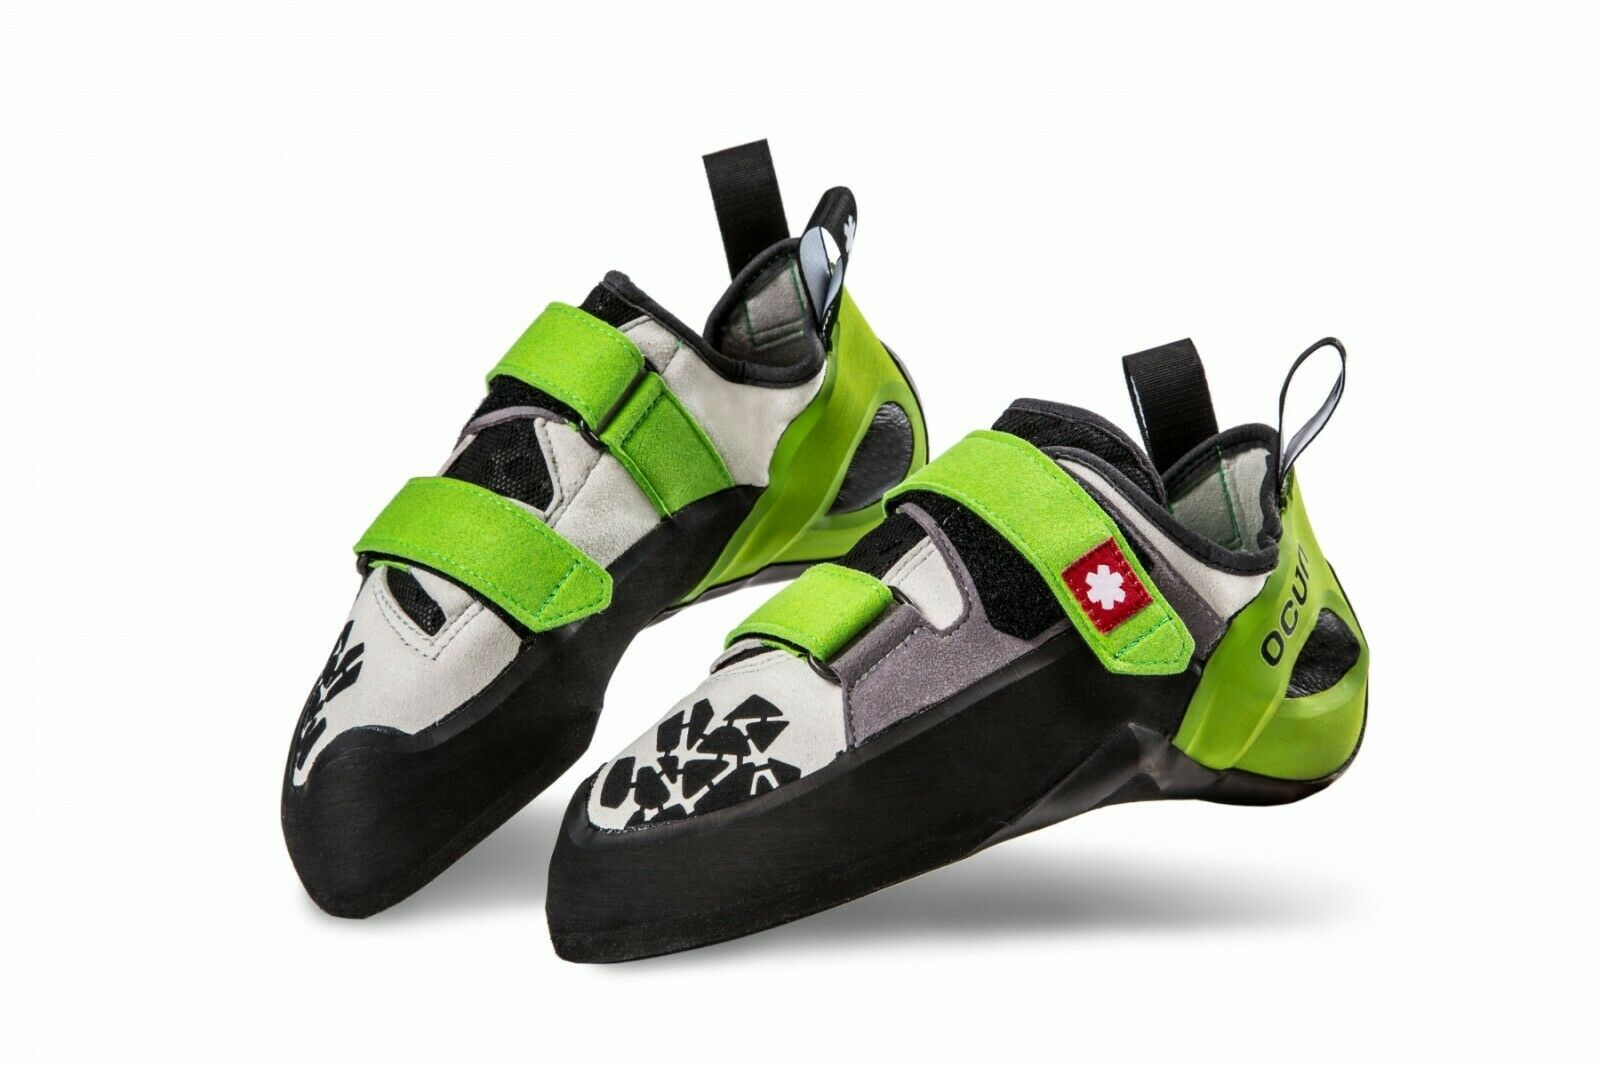 OCUN JETT QC  - New sport climbing in comfort - Ask me about the size  find your favorite here